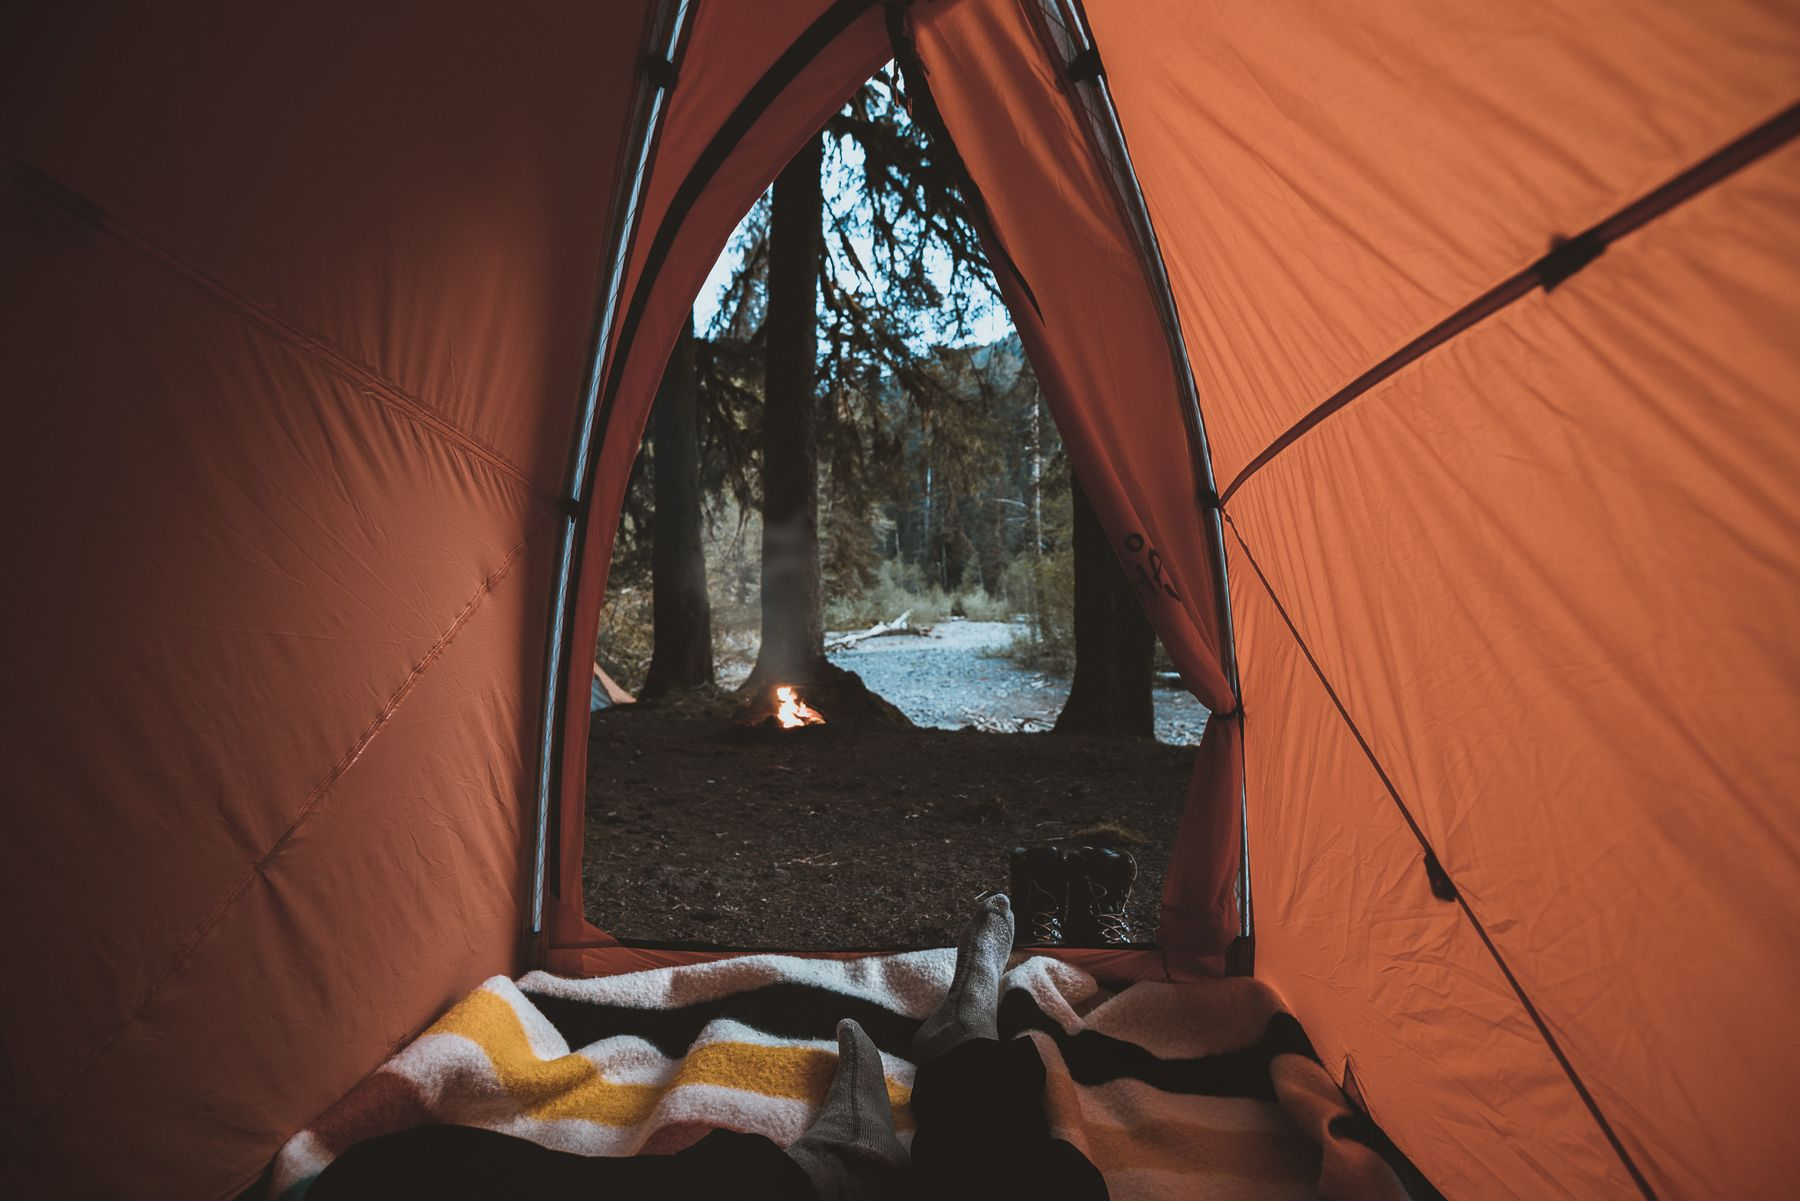 view from inside a camping tent to a lake